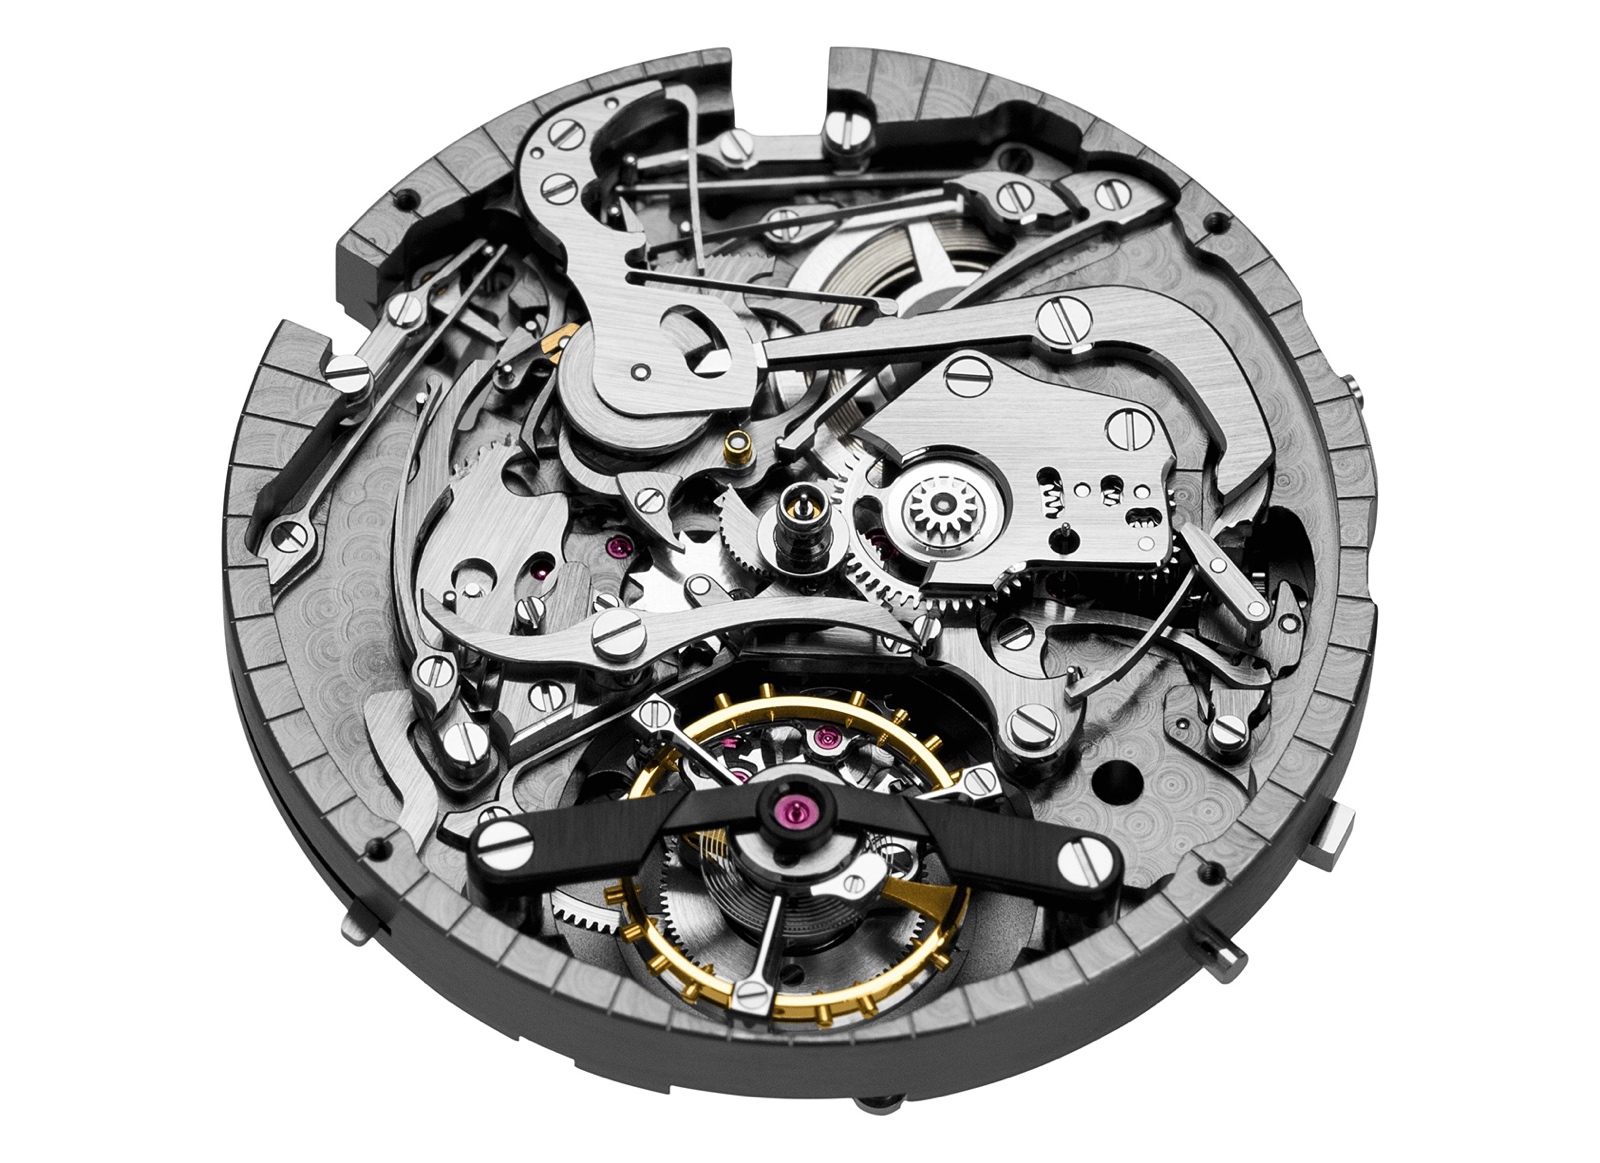 Audemars Piguet Royal Oak Concept Supersonería - calibre-2937 front